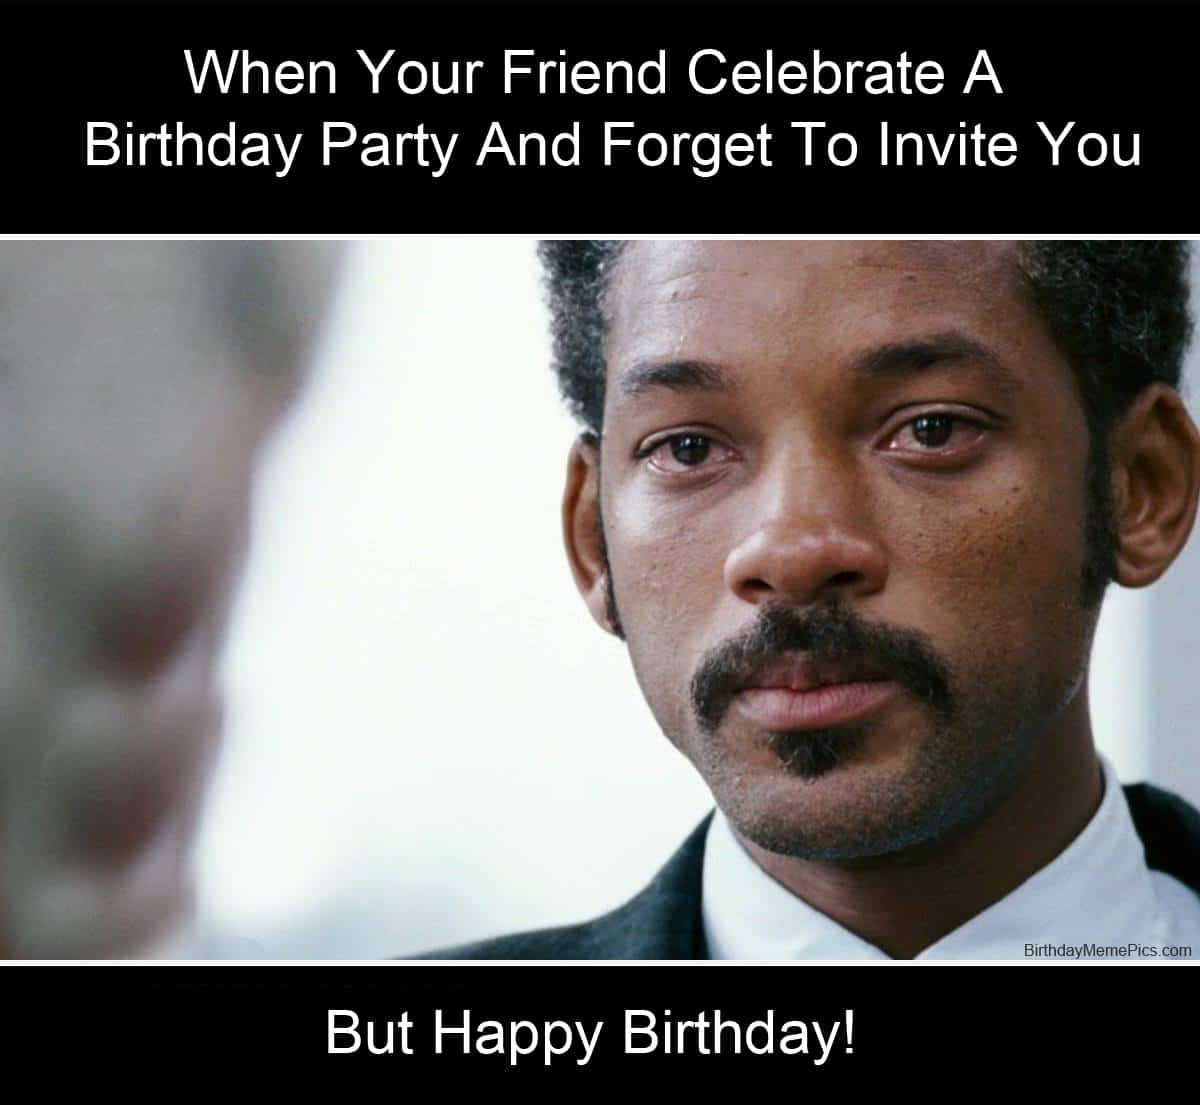 Funny Birthday Memes For Your Best Friend : Birthday memes for your best friend sayingimages